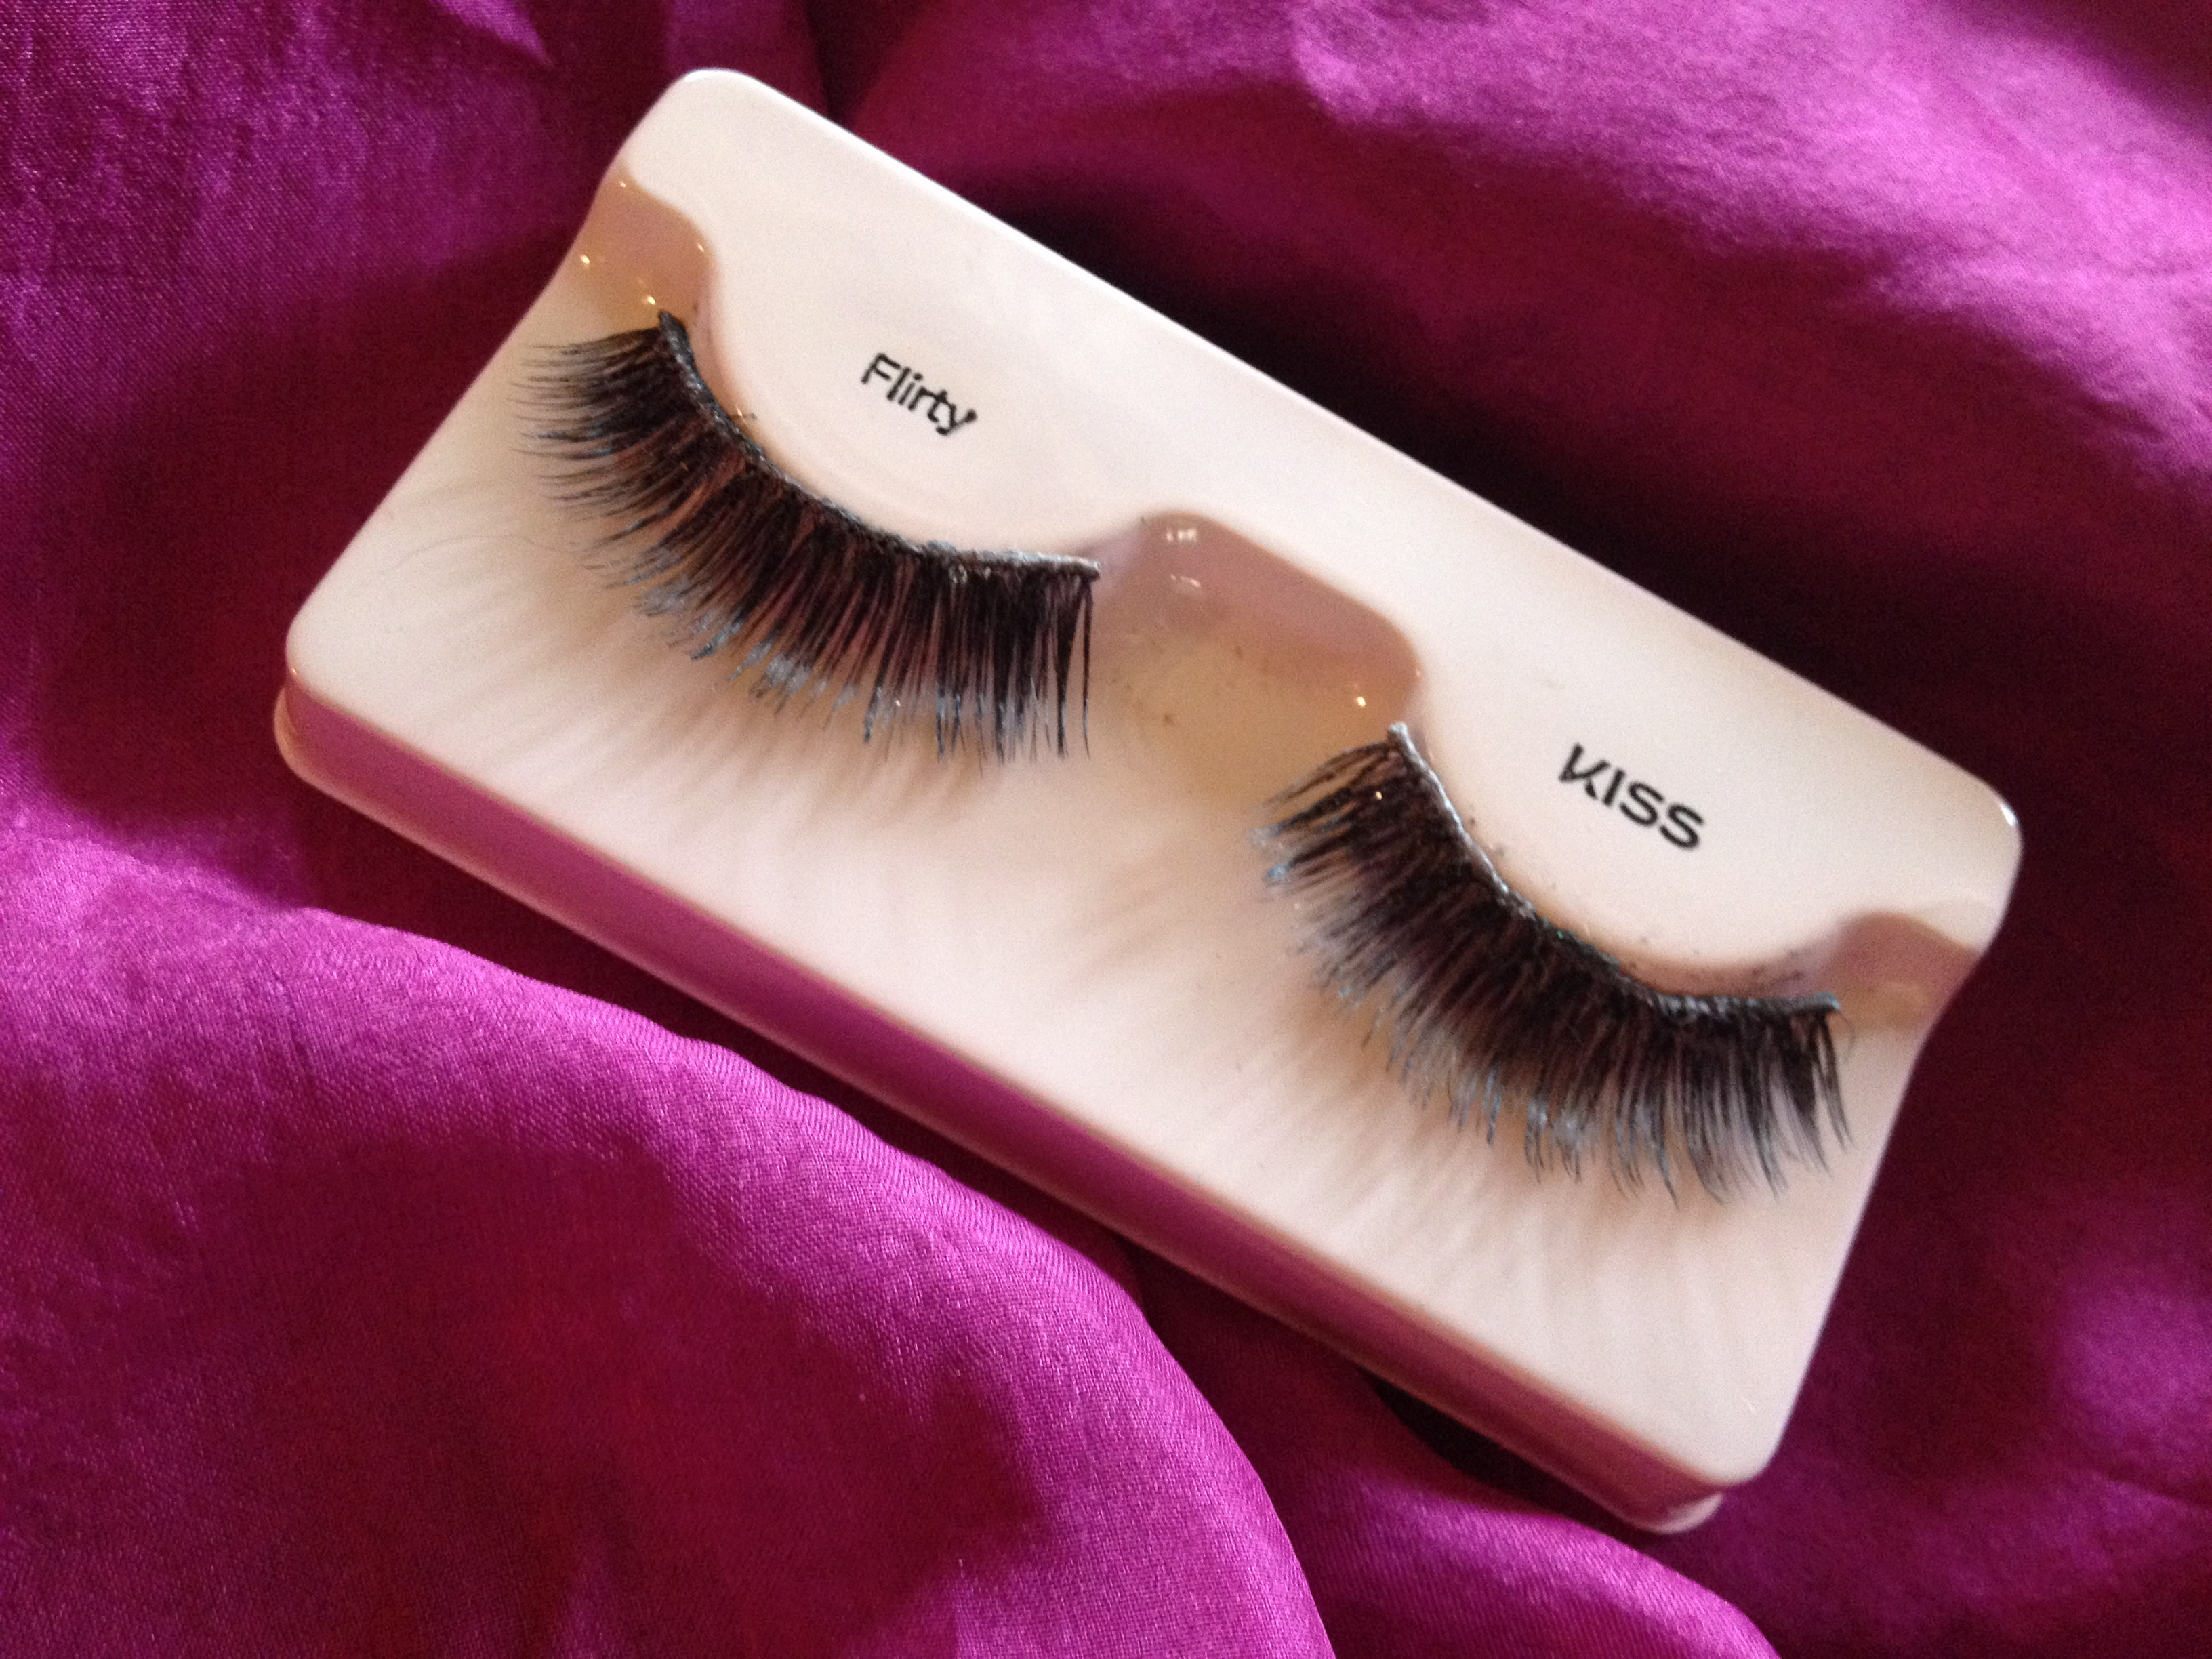 48a085ea602 False Eyelashes (or taking cues from the '70s) – J.C. O'BRIEN